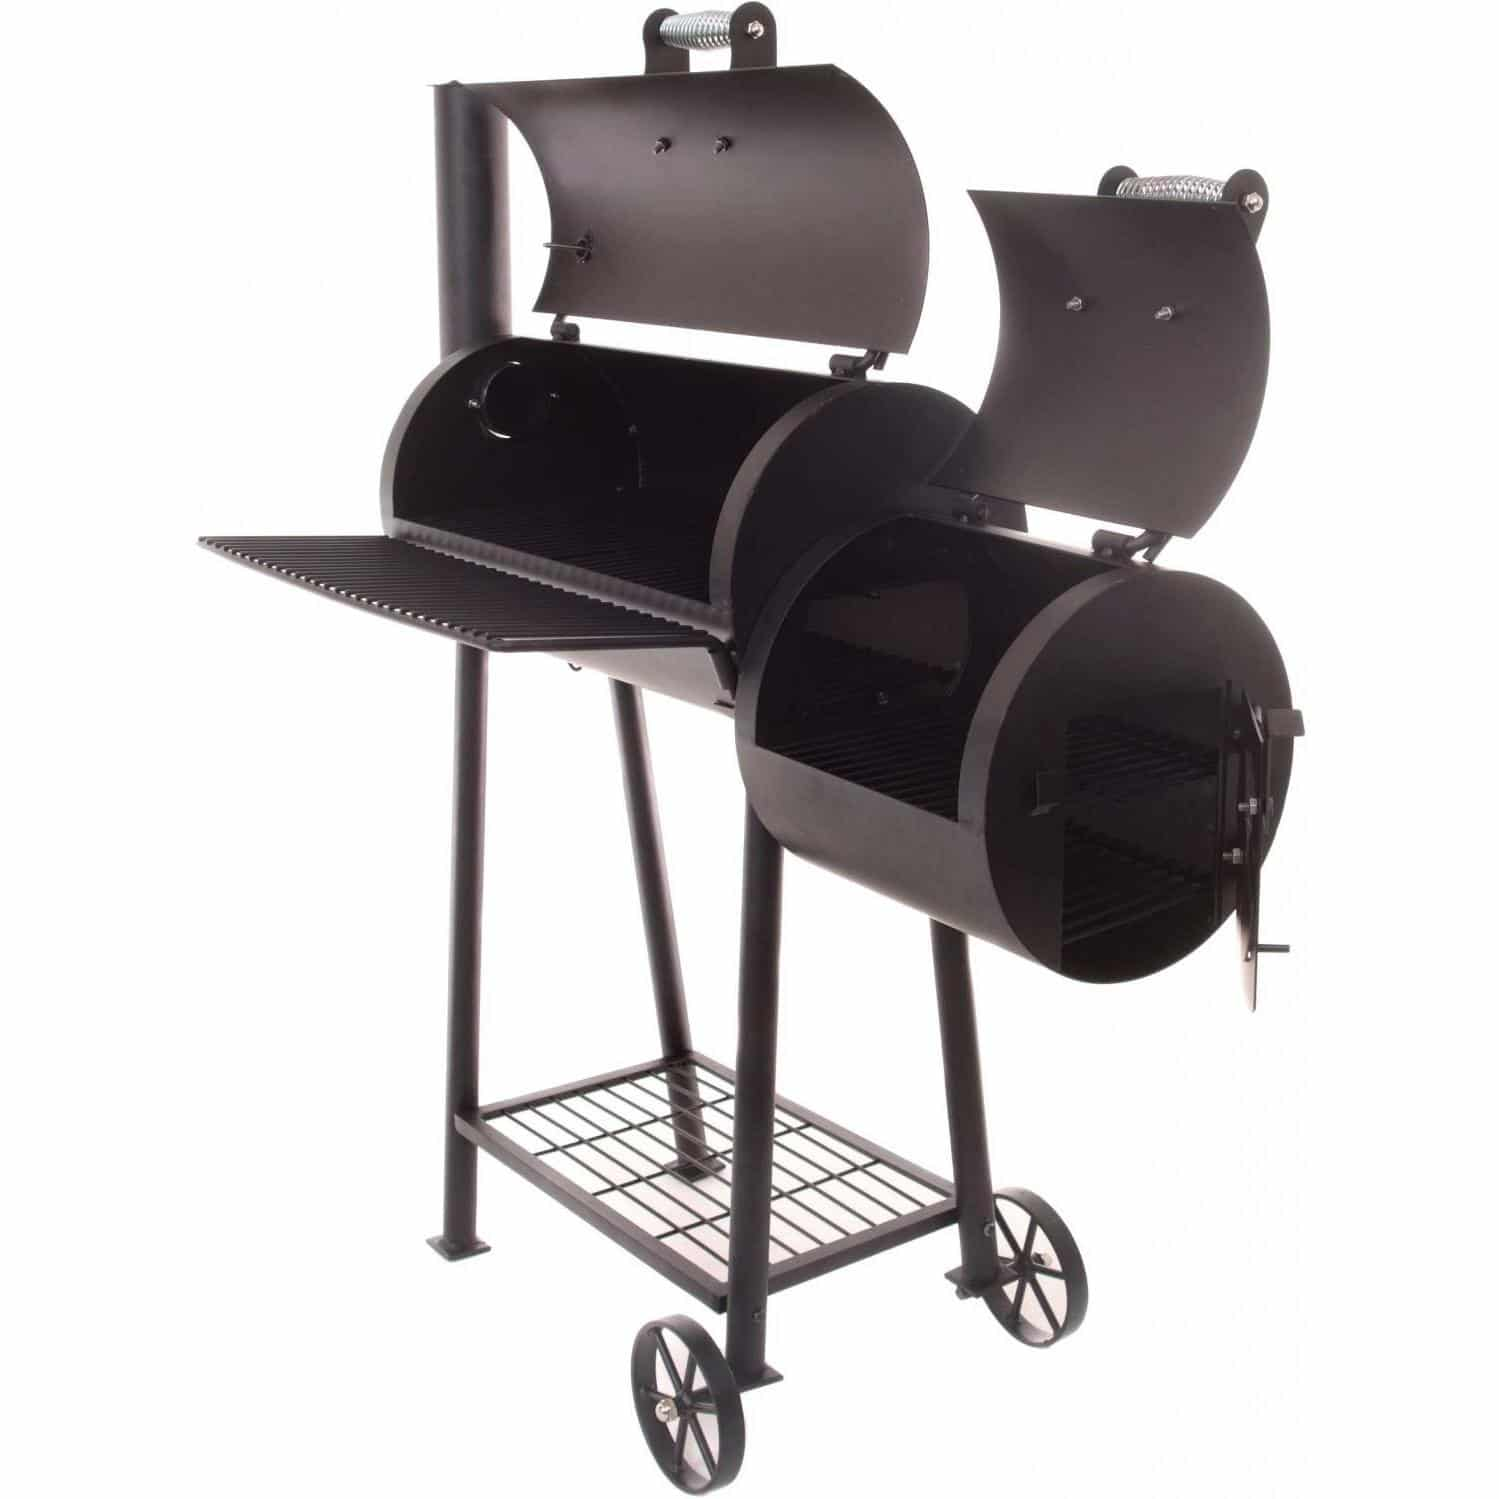 Top 5 BBQ Grill Smokers Reviewed 2017 2018